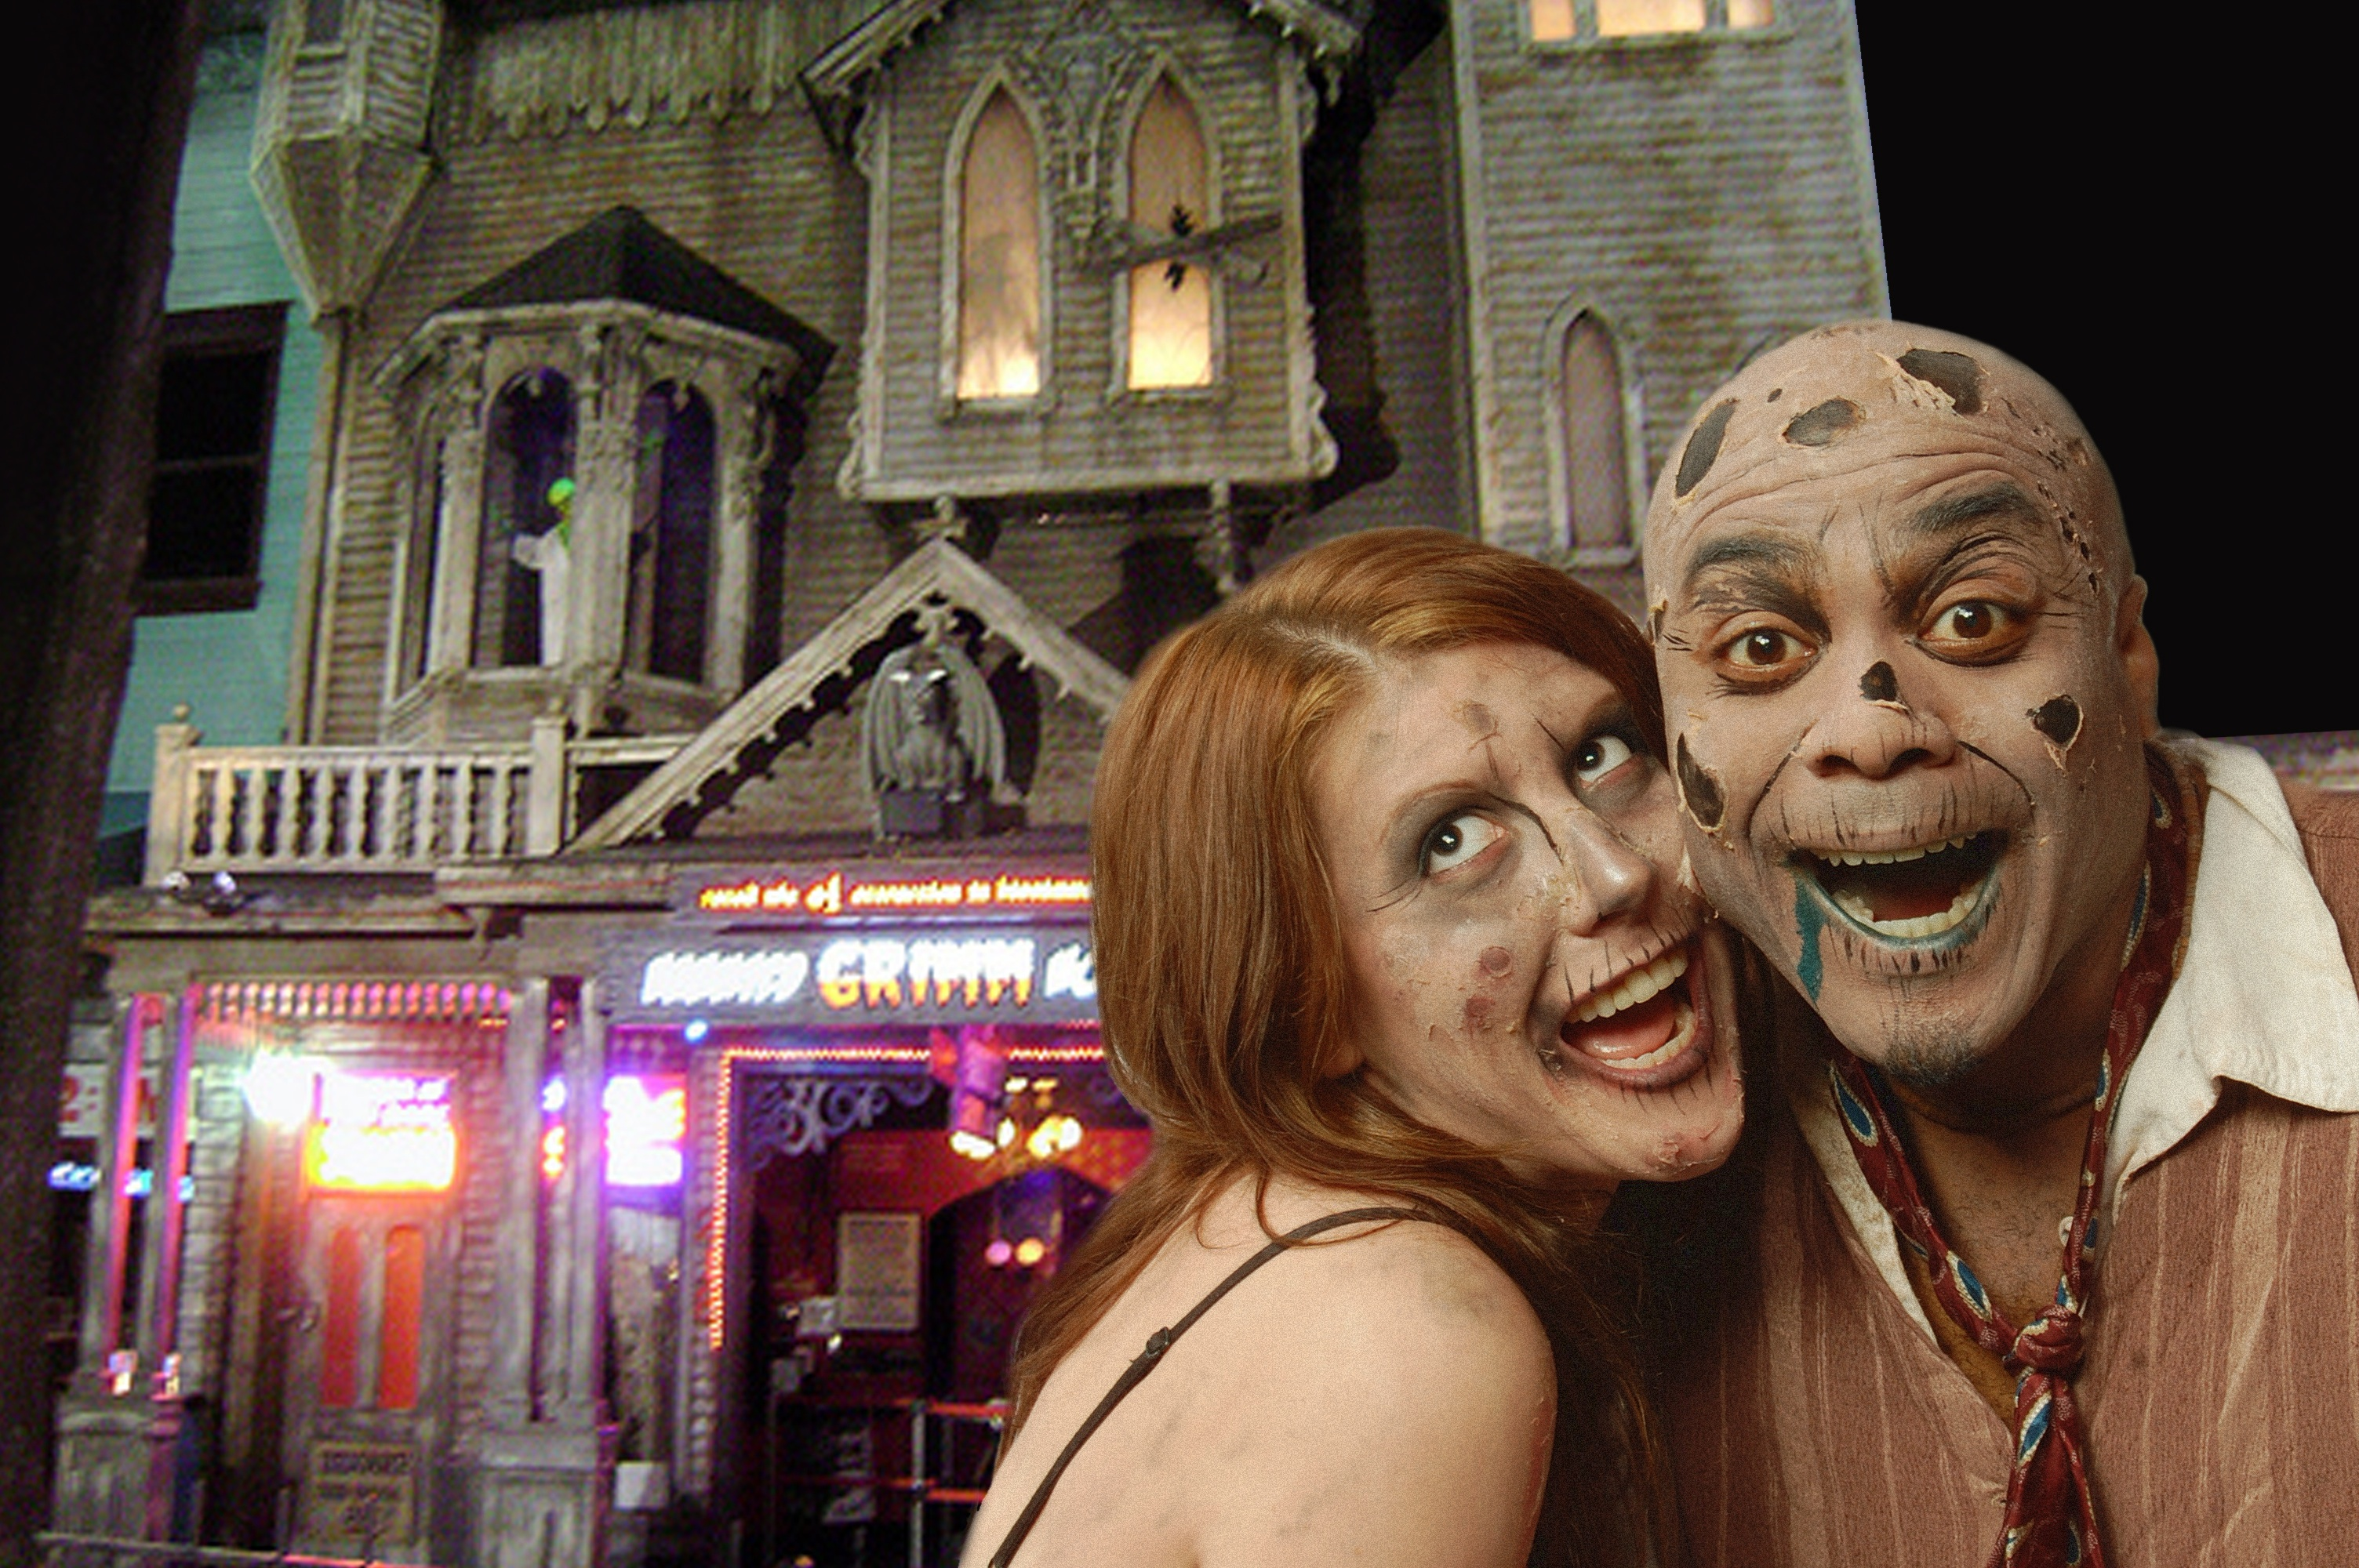 Old Town Kissimmee Halloween 2020 An Old Town Halloween 2012: Enjoy this free & frightening event on